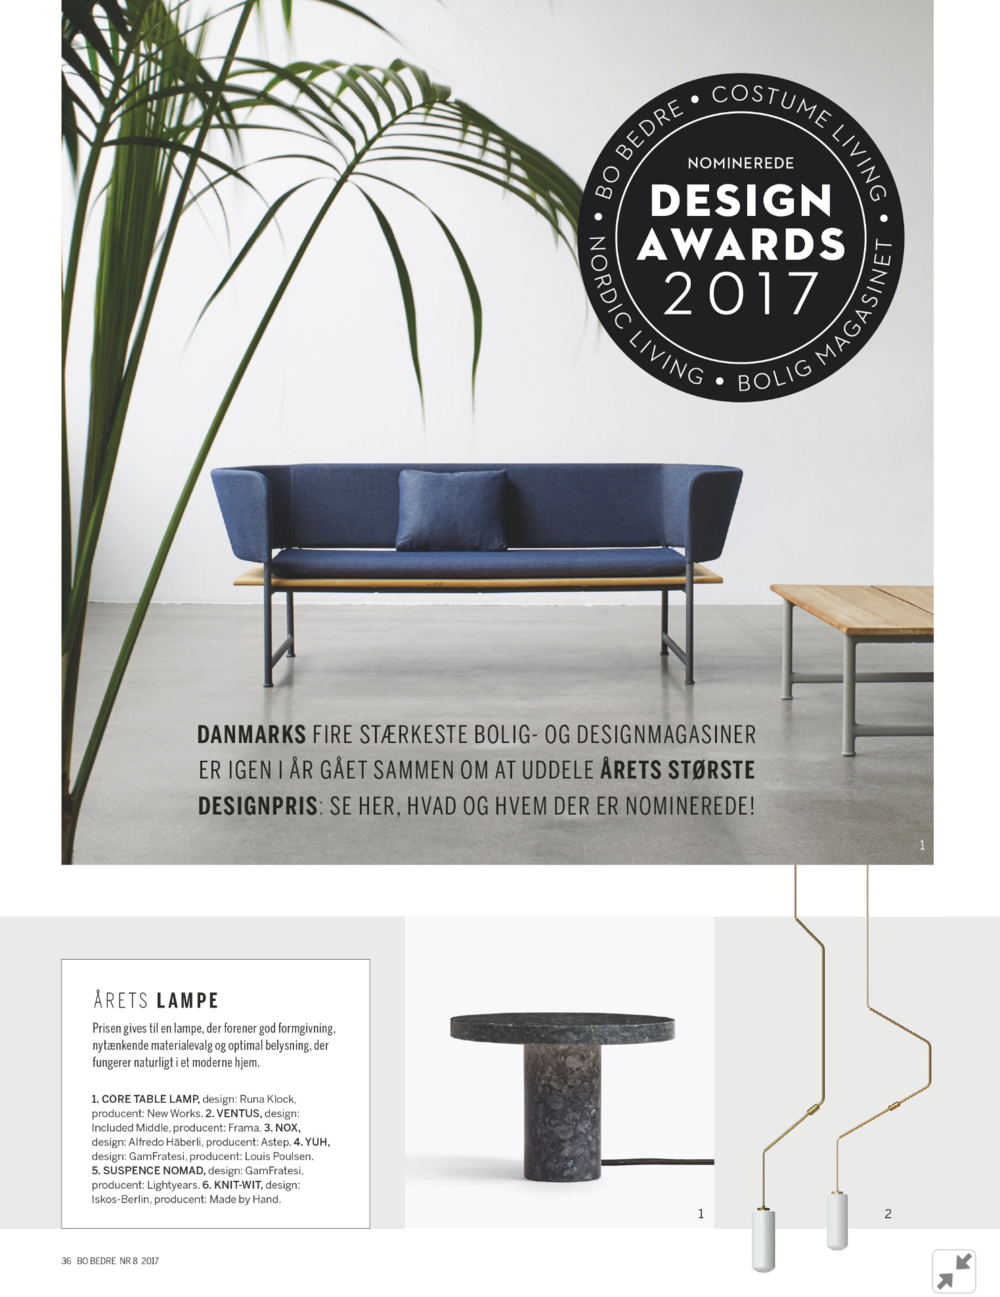 Design Award 2017 - Lamp of the Year!